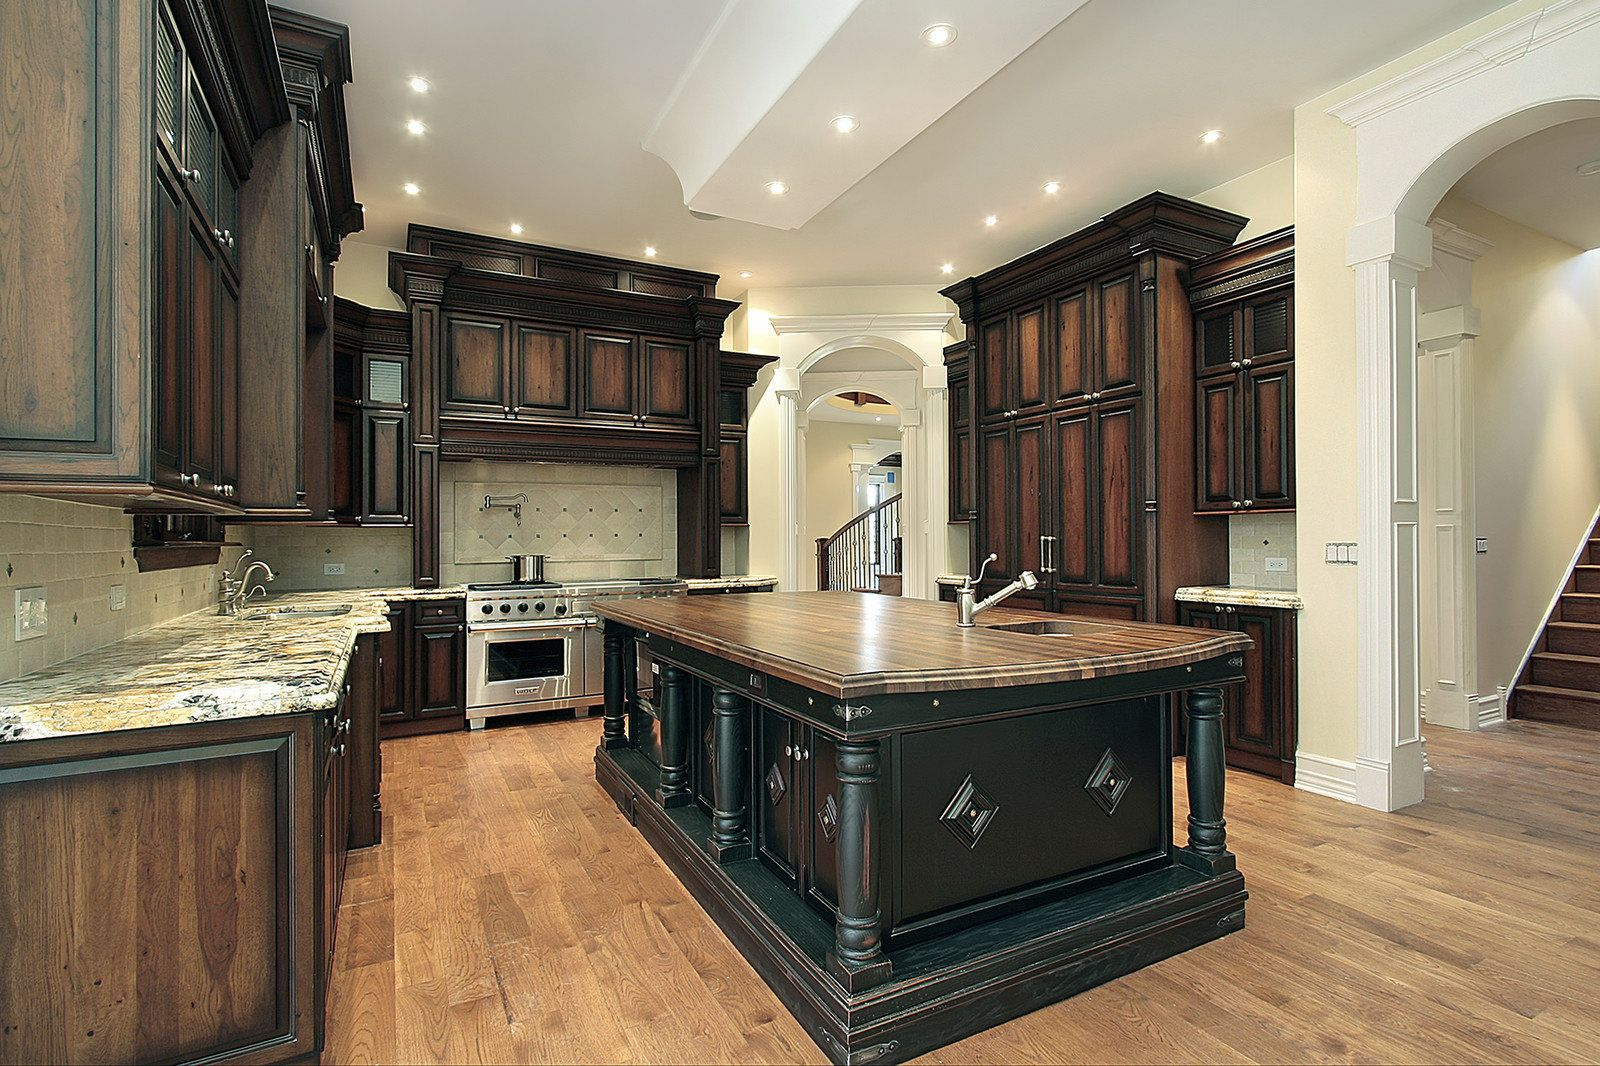 Best staining kitchen cabinets ideas inspired kitchen for Best way to stain kitchen cabinets